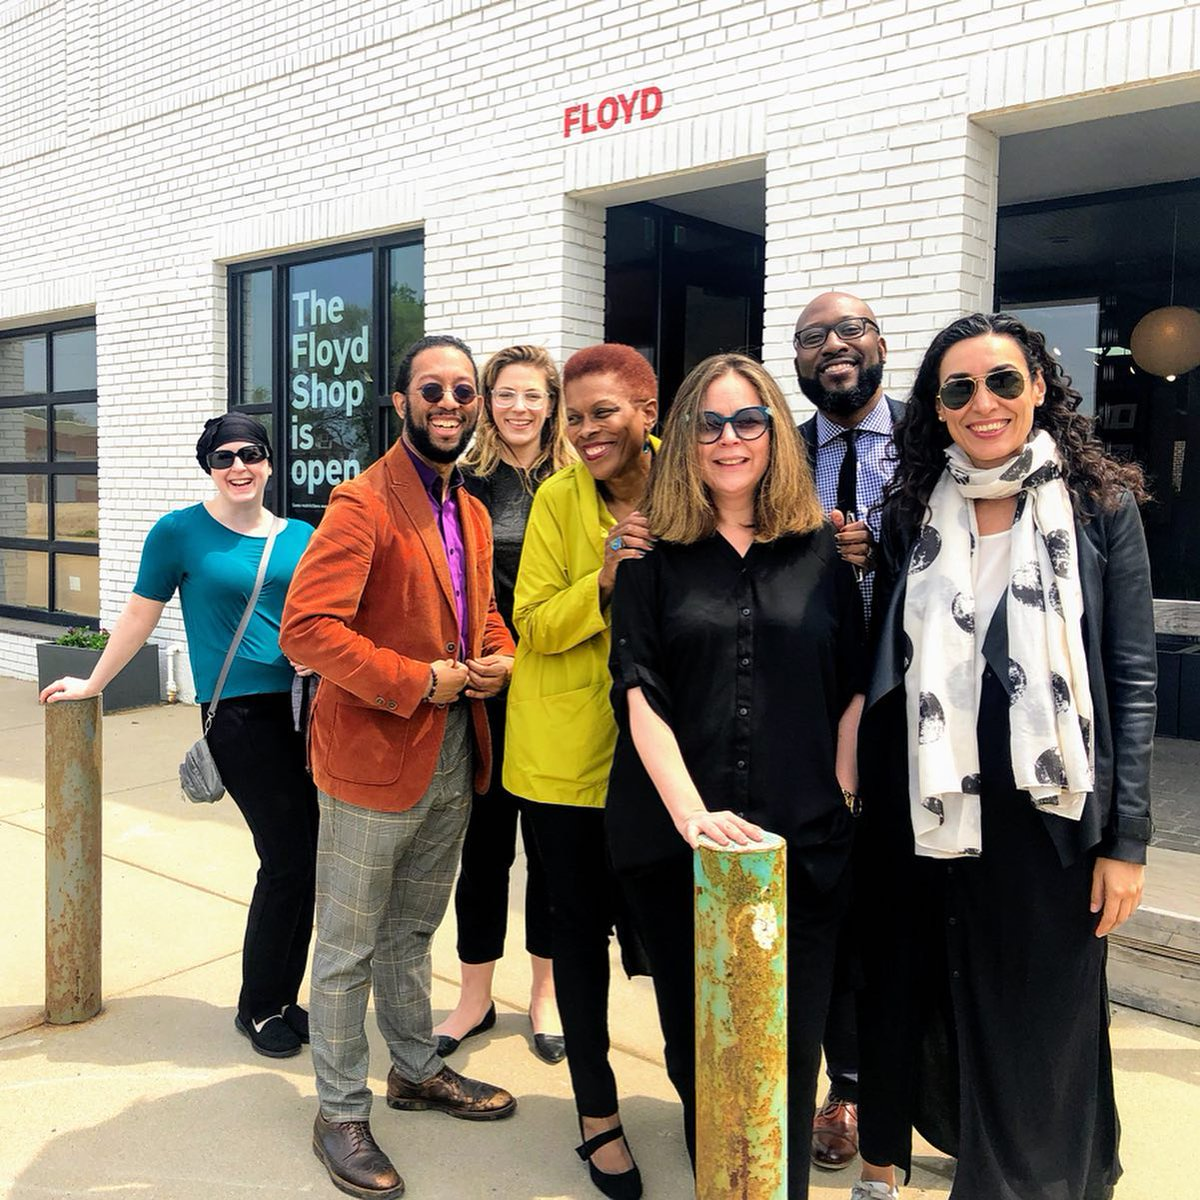 Last weekend we visited the 2019 Commerce Design: Detroit Finalists! Joined by our local and international jury, we visited all 20 locations to see how they are utilizing design. Winners will be unveiled on August 8, but for now visit bit.ly/2HJkWXR to learn more!